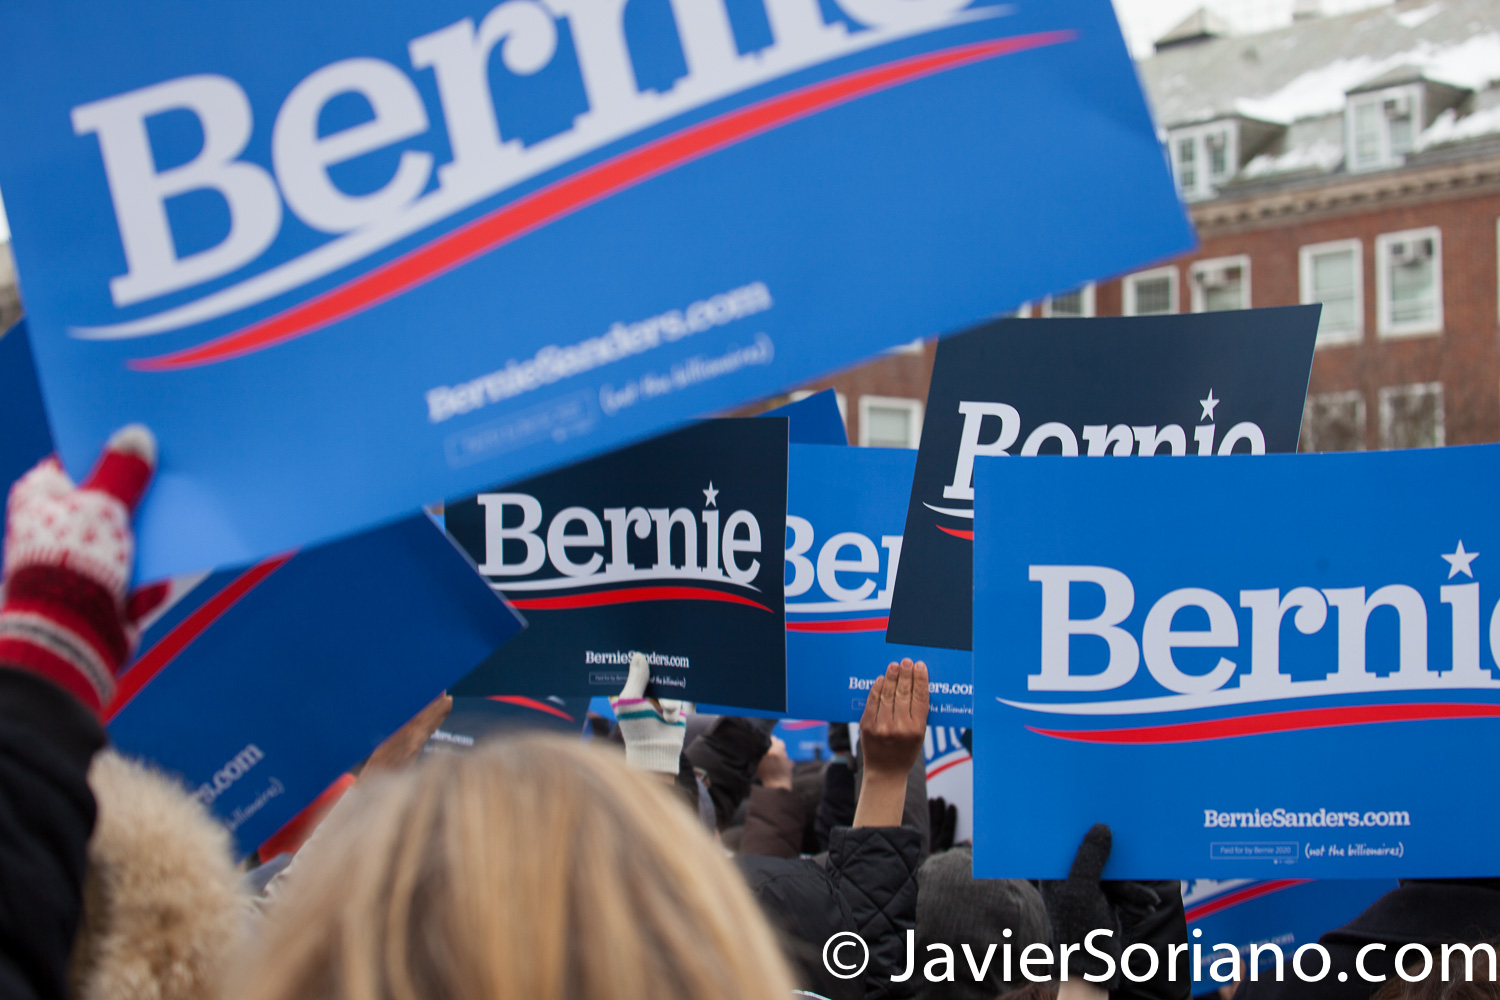 Saturday, March 2, 2019. Brooklyn College. Brooklyn, New York City. Supporters listening to U.S. Senator and presidential candidate Bernie Sanders. This is the first event of his 2020 presidential campaign. Photo by Javier Soriano/www.JavierSoriano.com